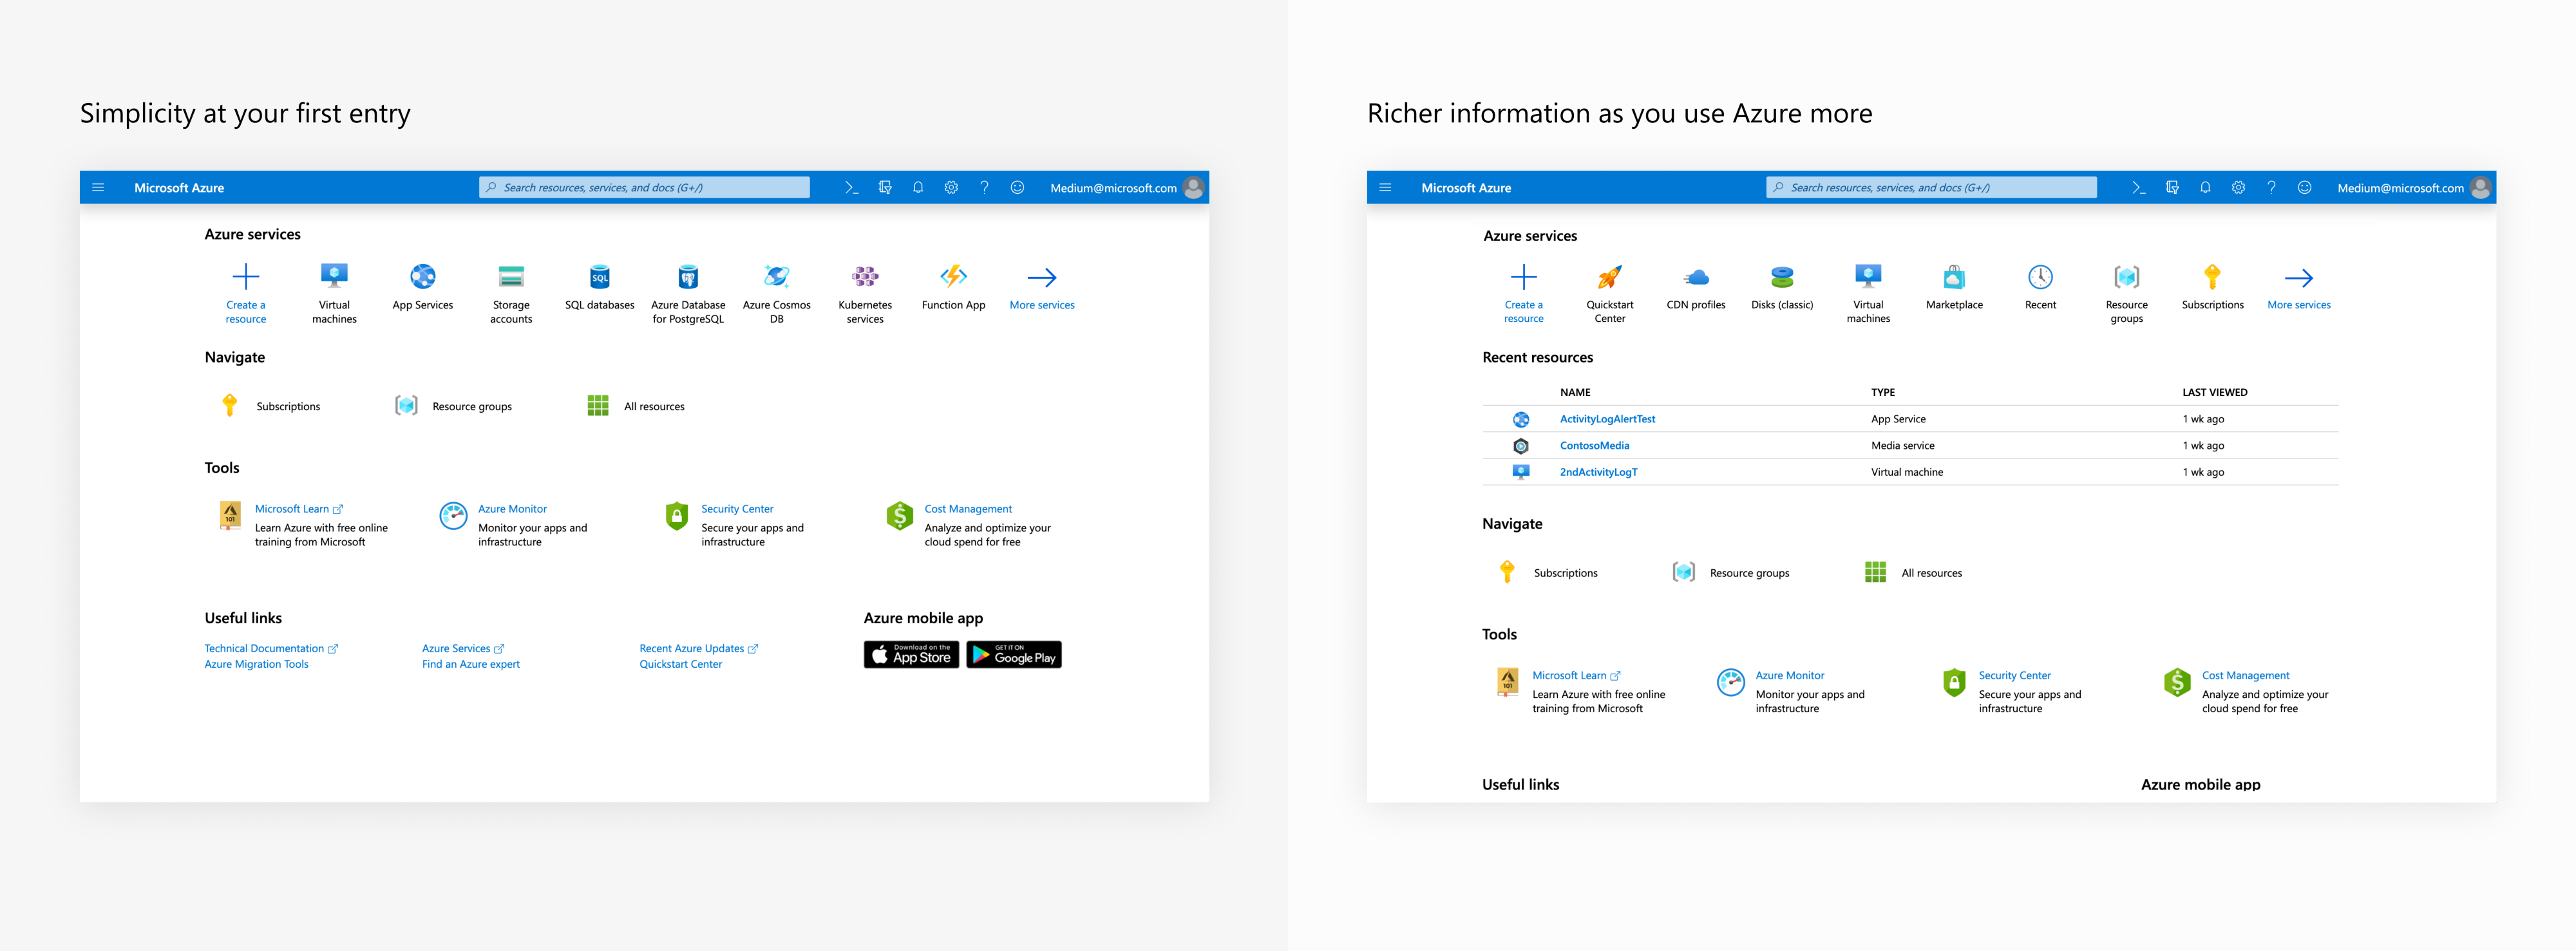 Left: The simpler Azure portal home page; Right: Richer information as you use Azure more.